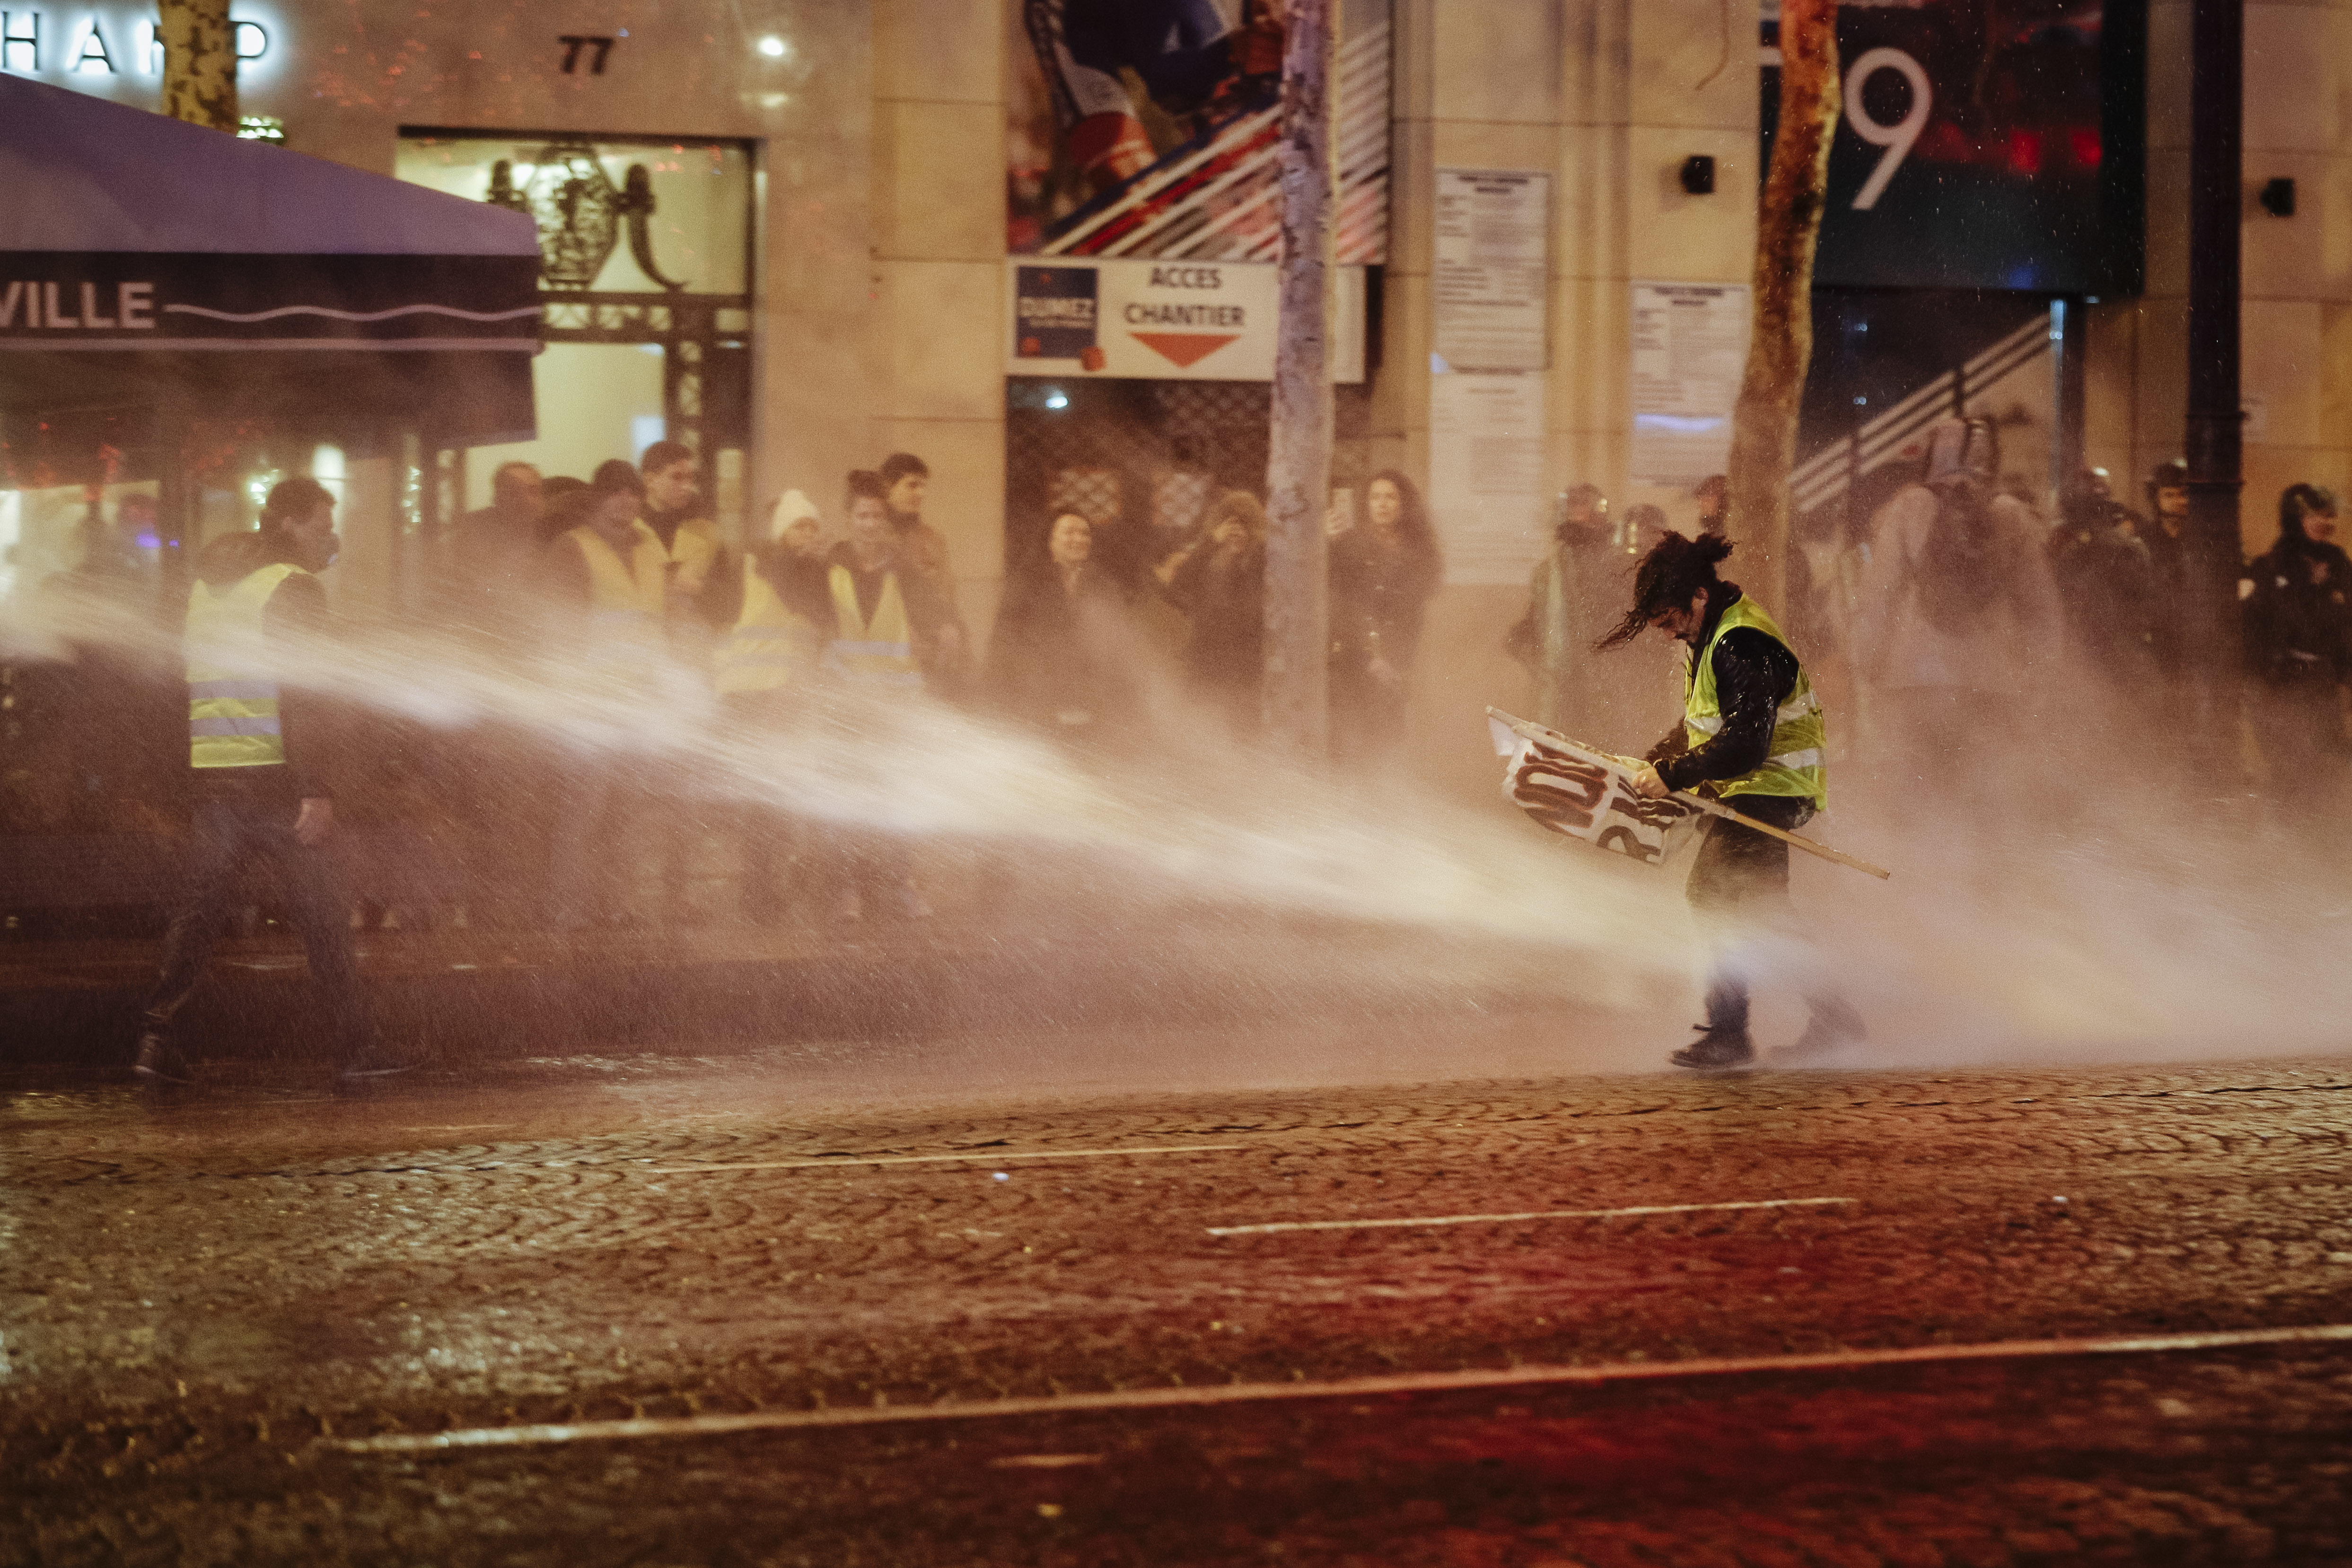 French police defend actions after clashes with protesters